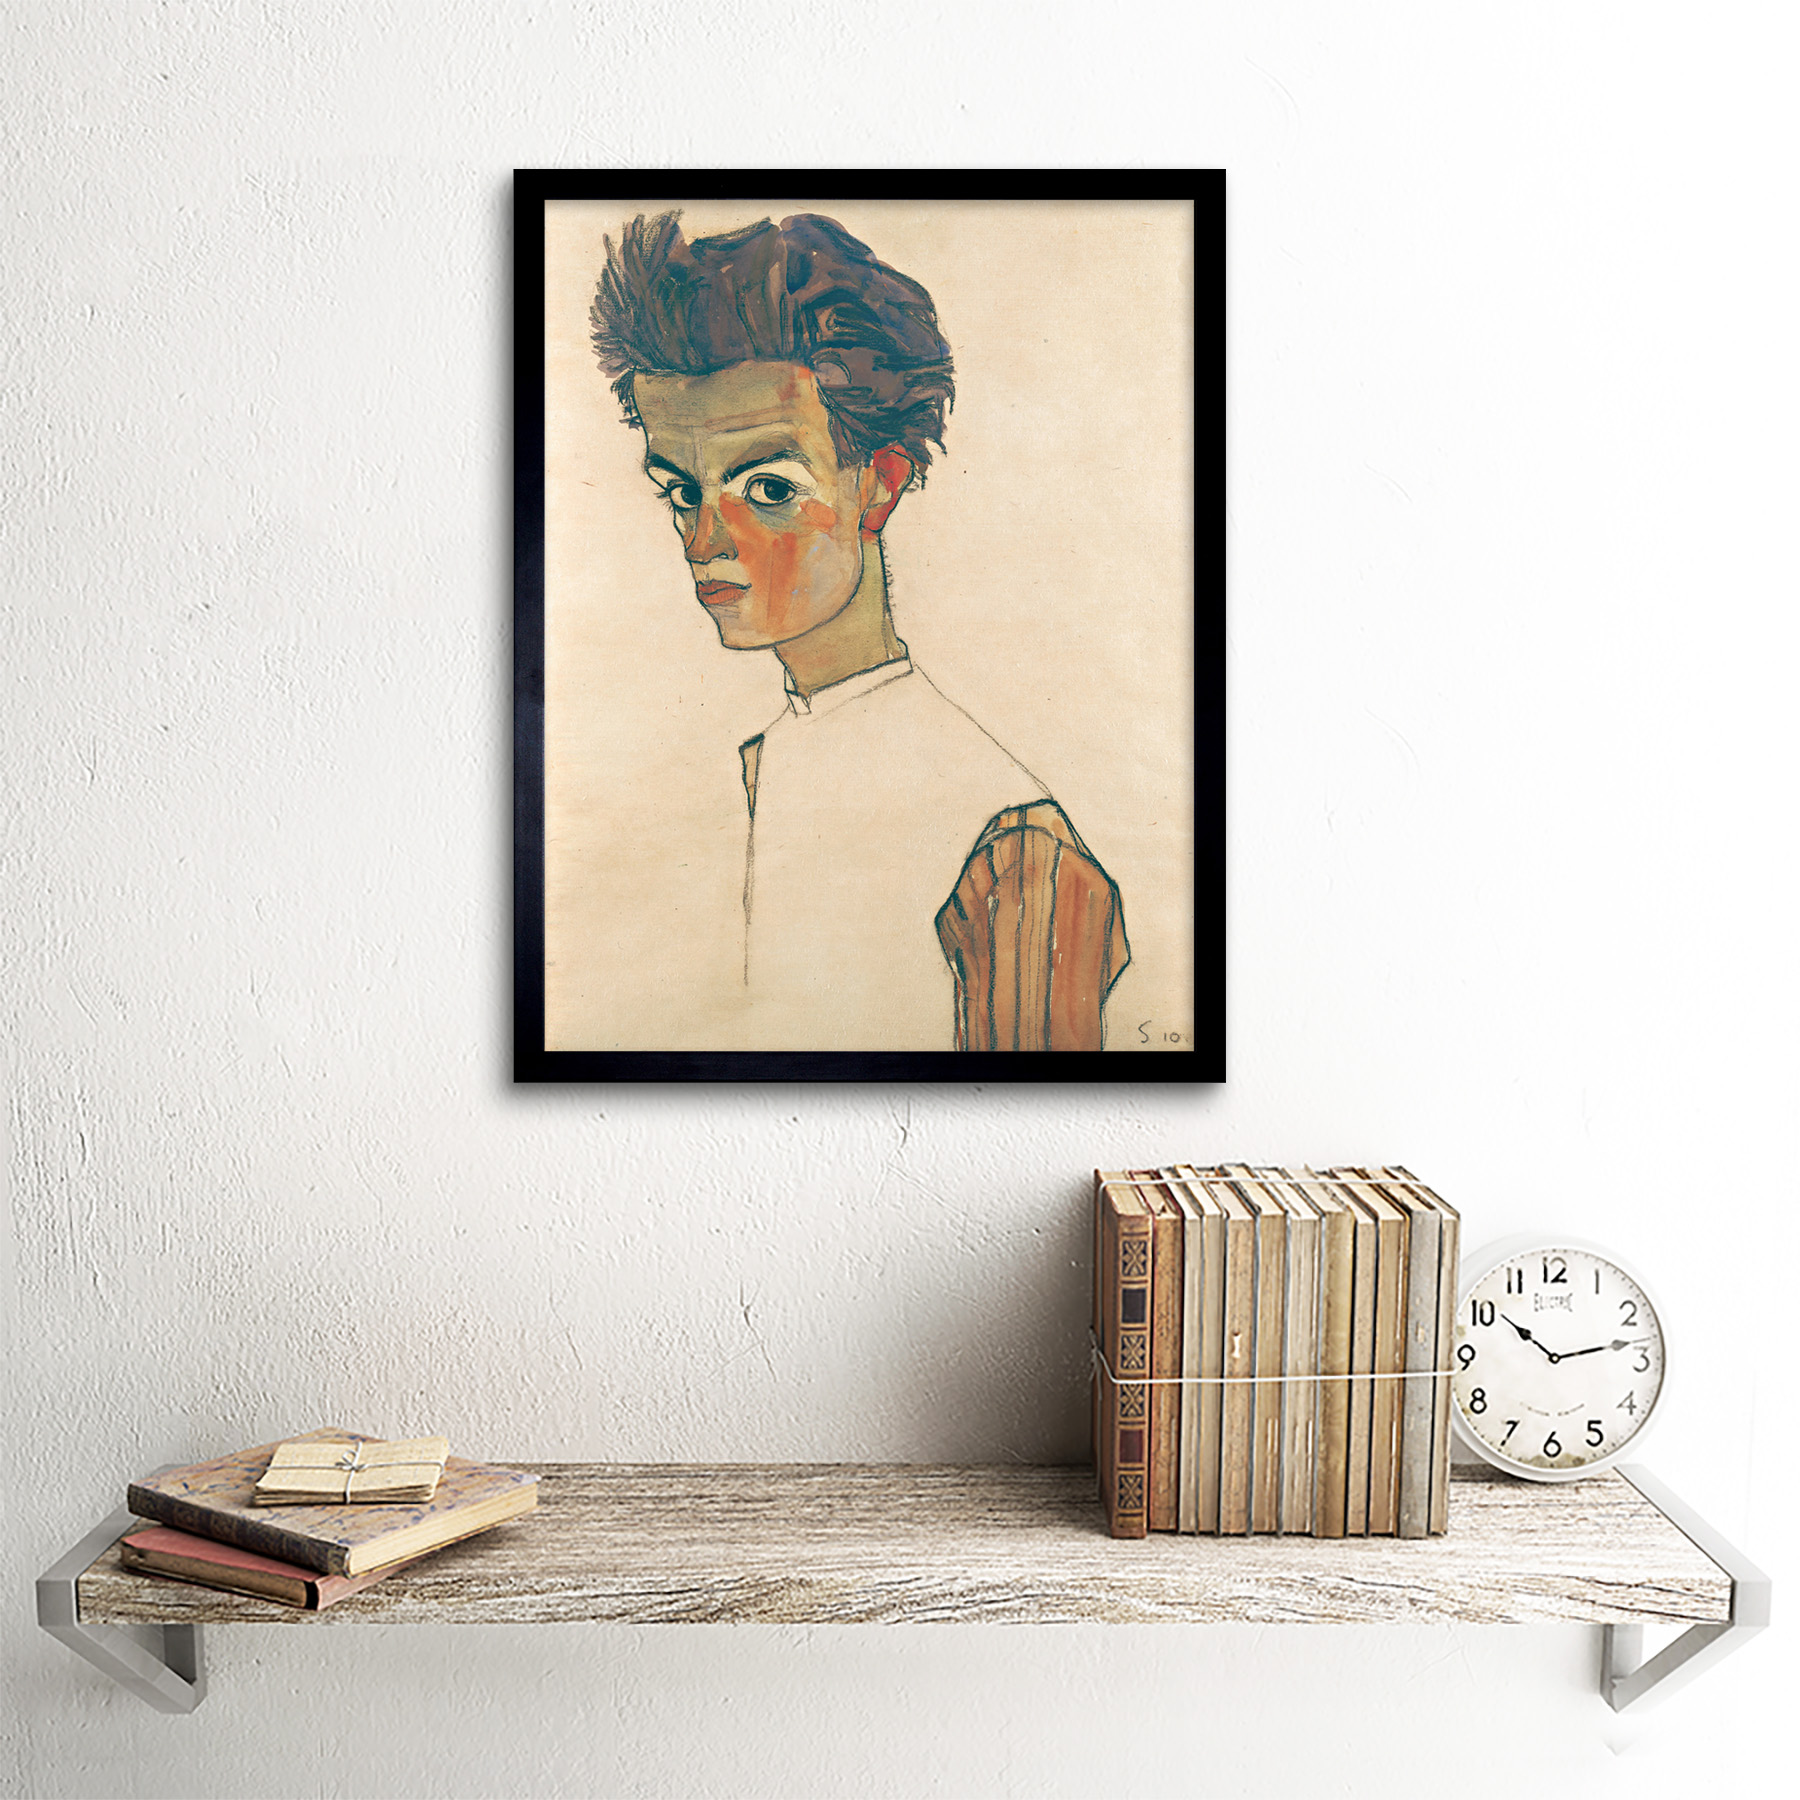 thumbnail 3 - Egon-Schiele-Self-Portrait-With-Striped-Shirt-Art-Print-Framed-12x16